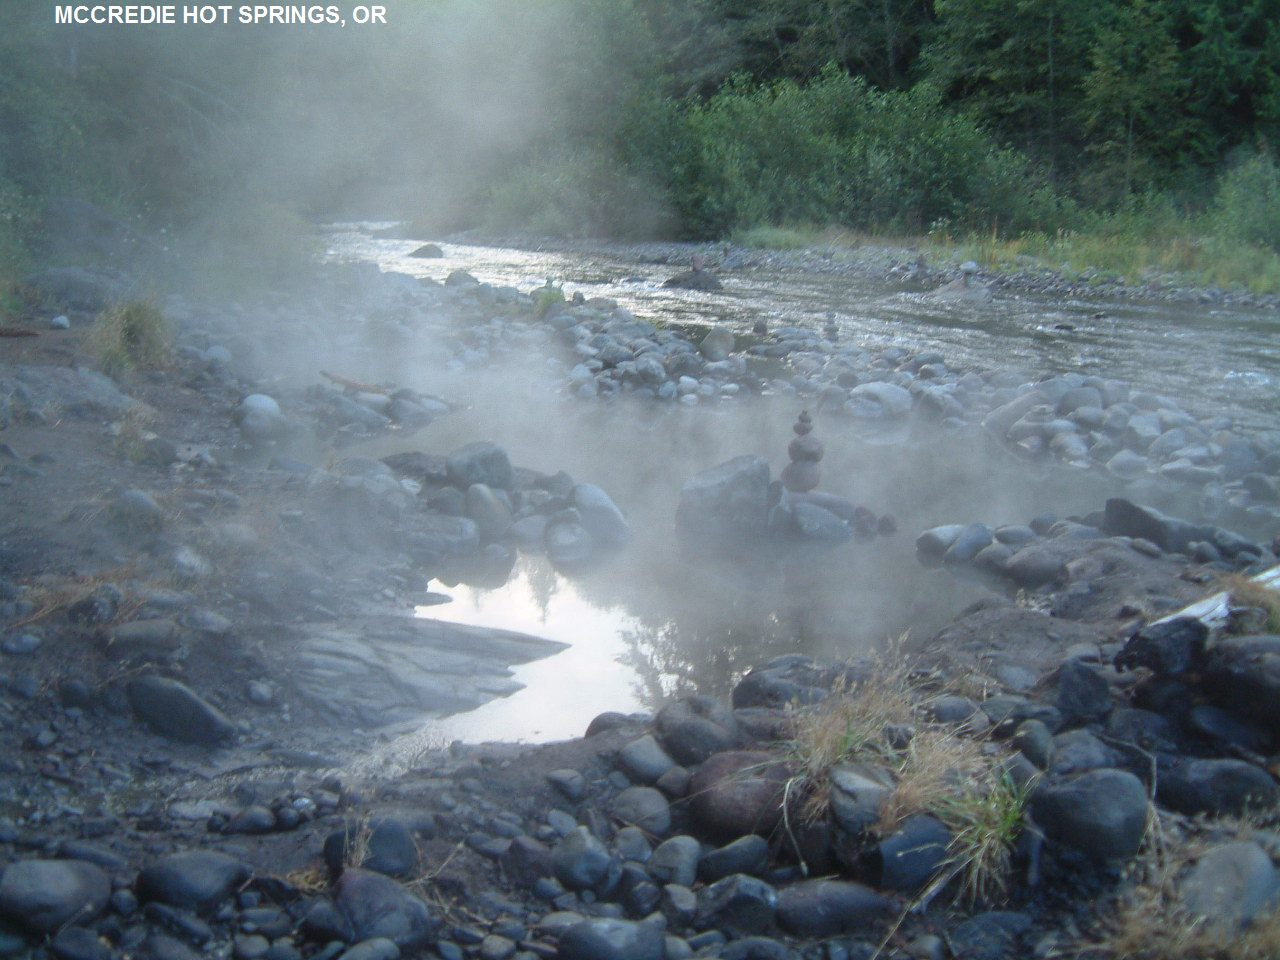 SwimmingHolesinfo Oregon Swimming Holes and Hot Springs rivers